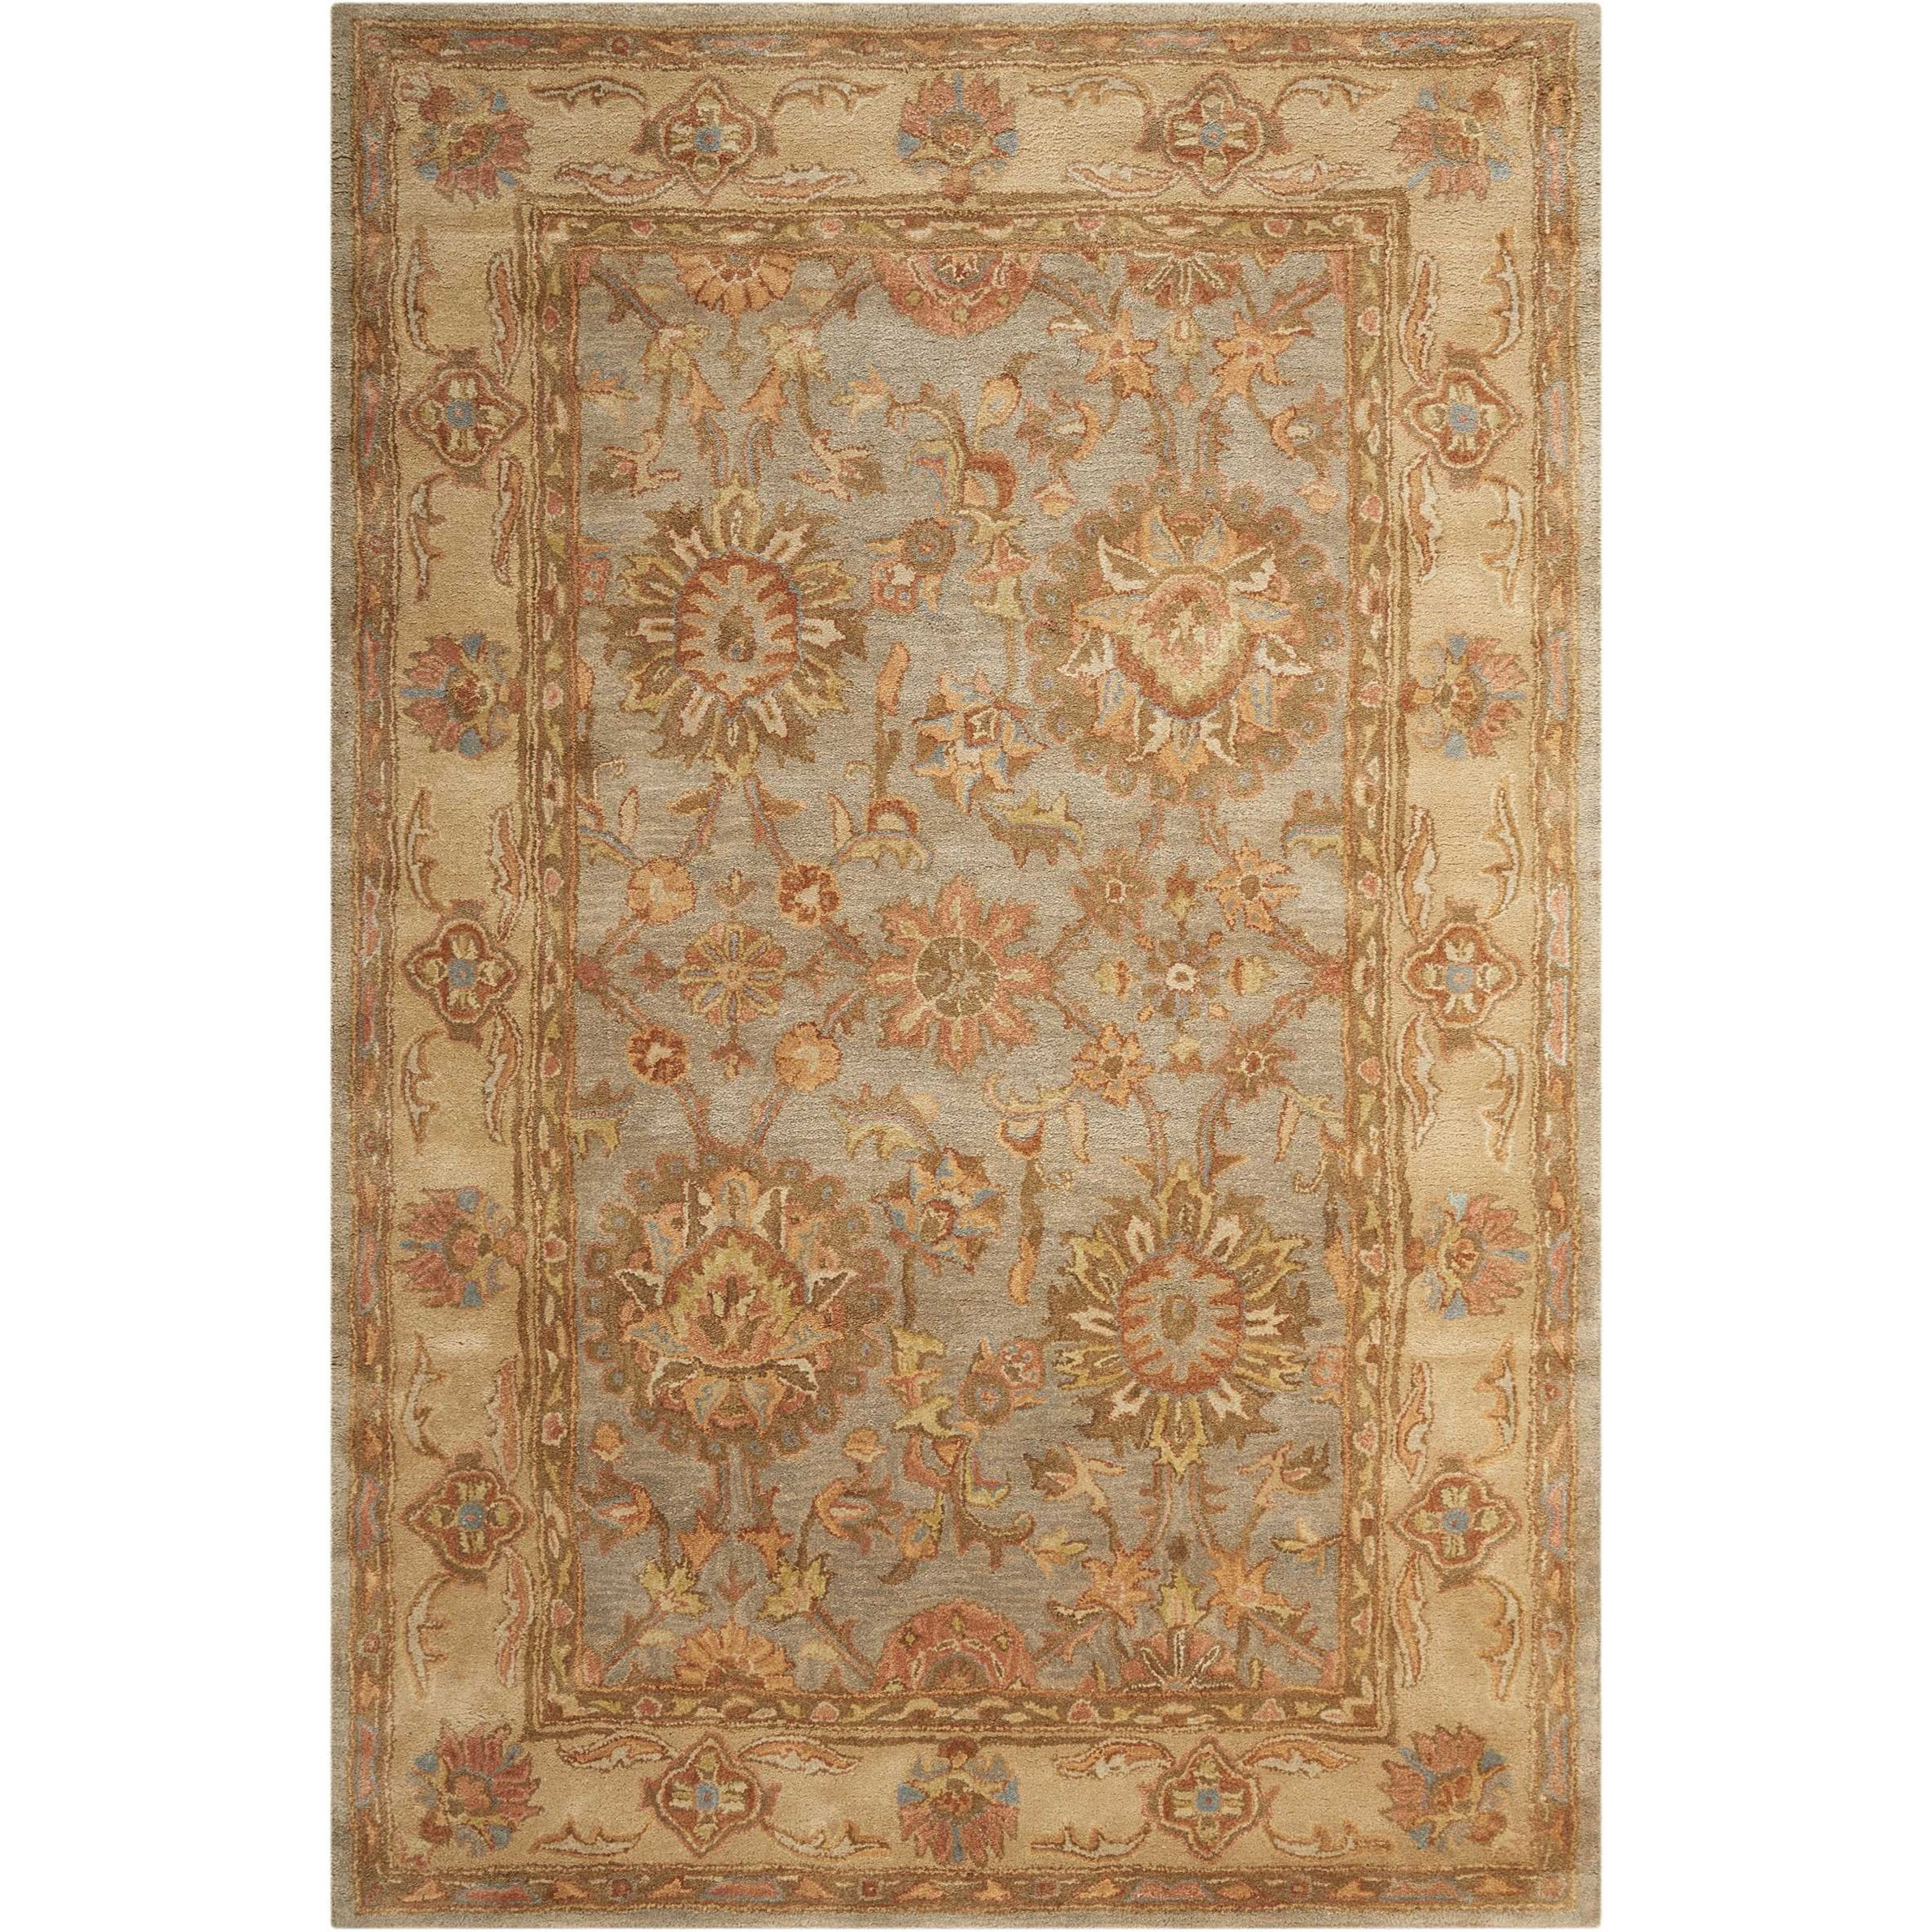 "Jaipur 5'6"" x 8'6"" Aqua Rectangle Rug by Nourison at Home Collections Furniture"